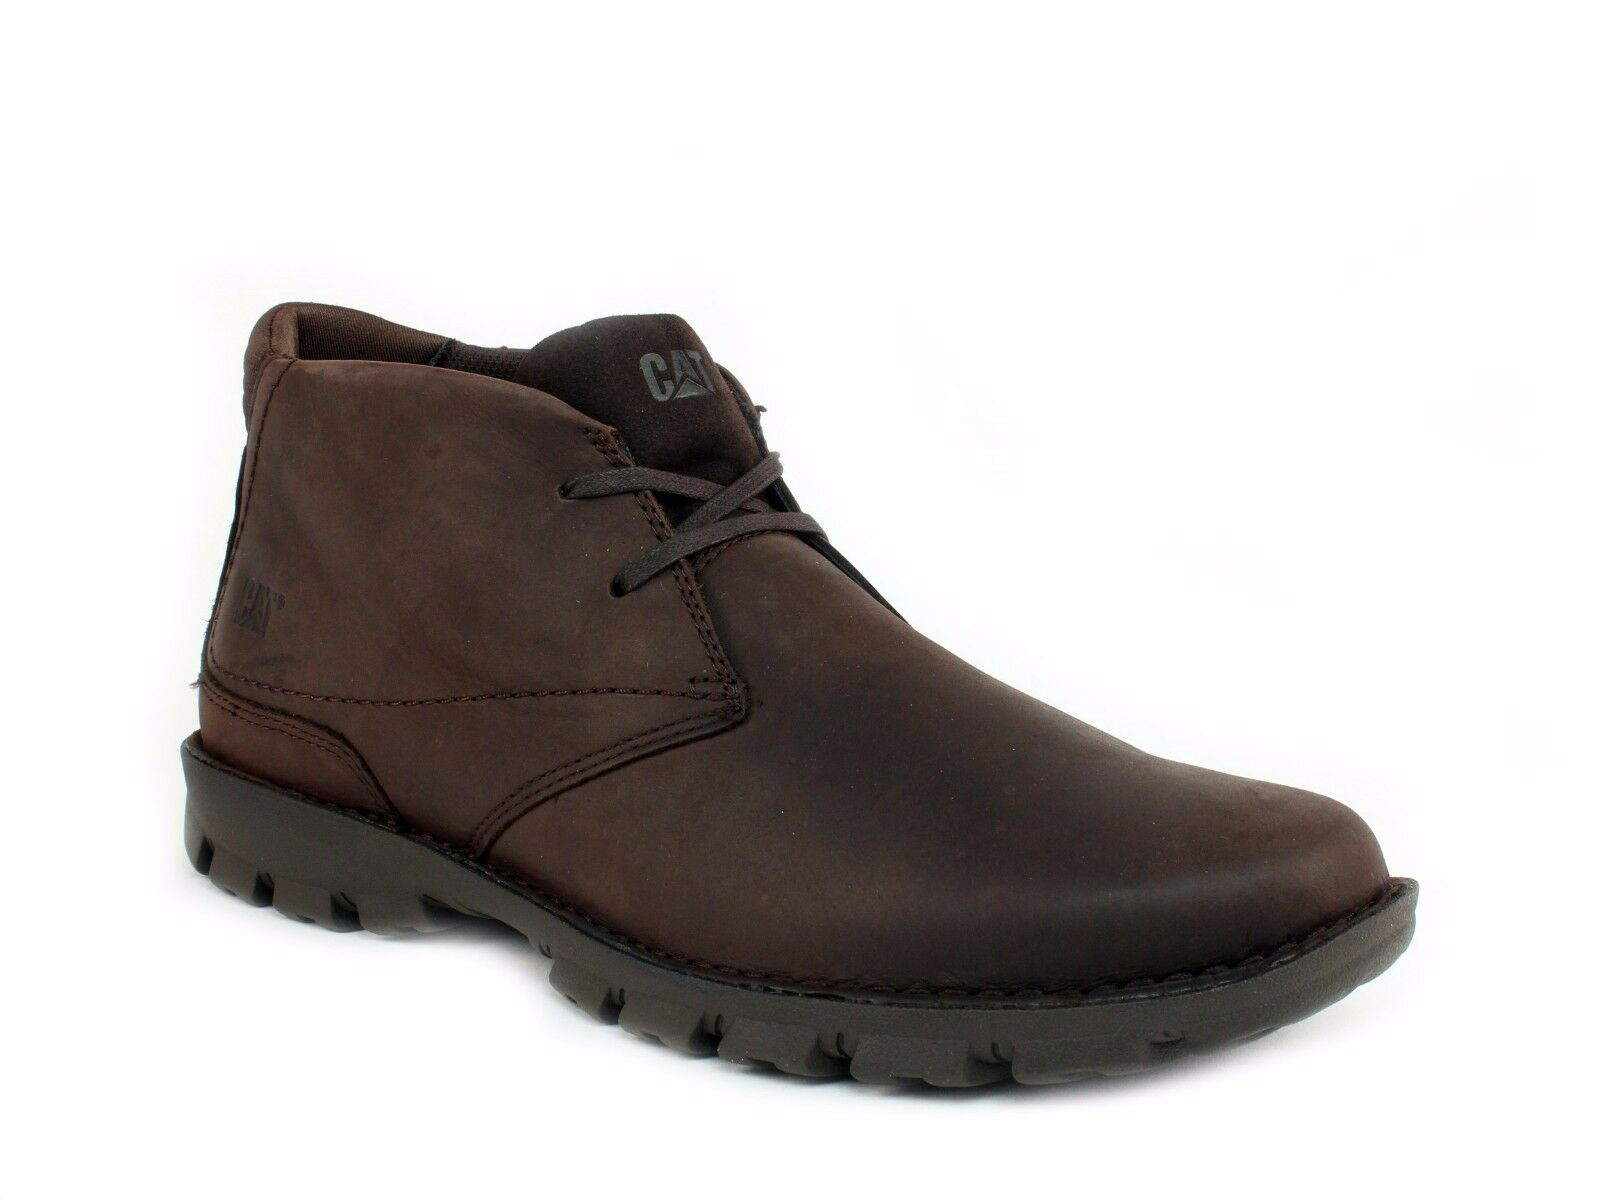 Caterpillar MITCH Mid Cut Mens Slip Resistant Work Casual Chocolate Leather Boot